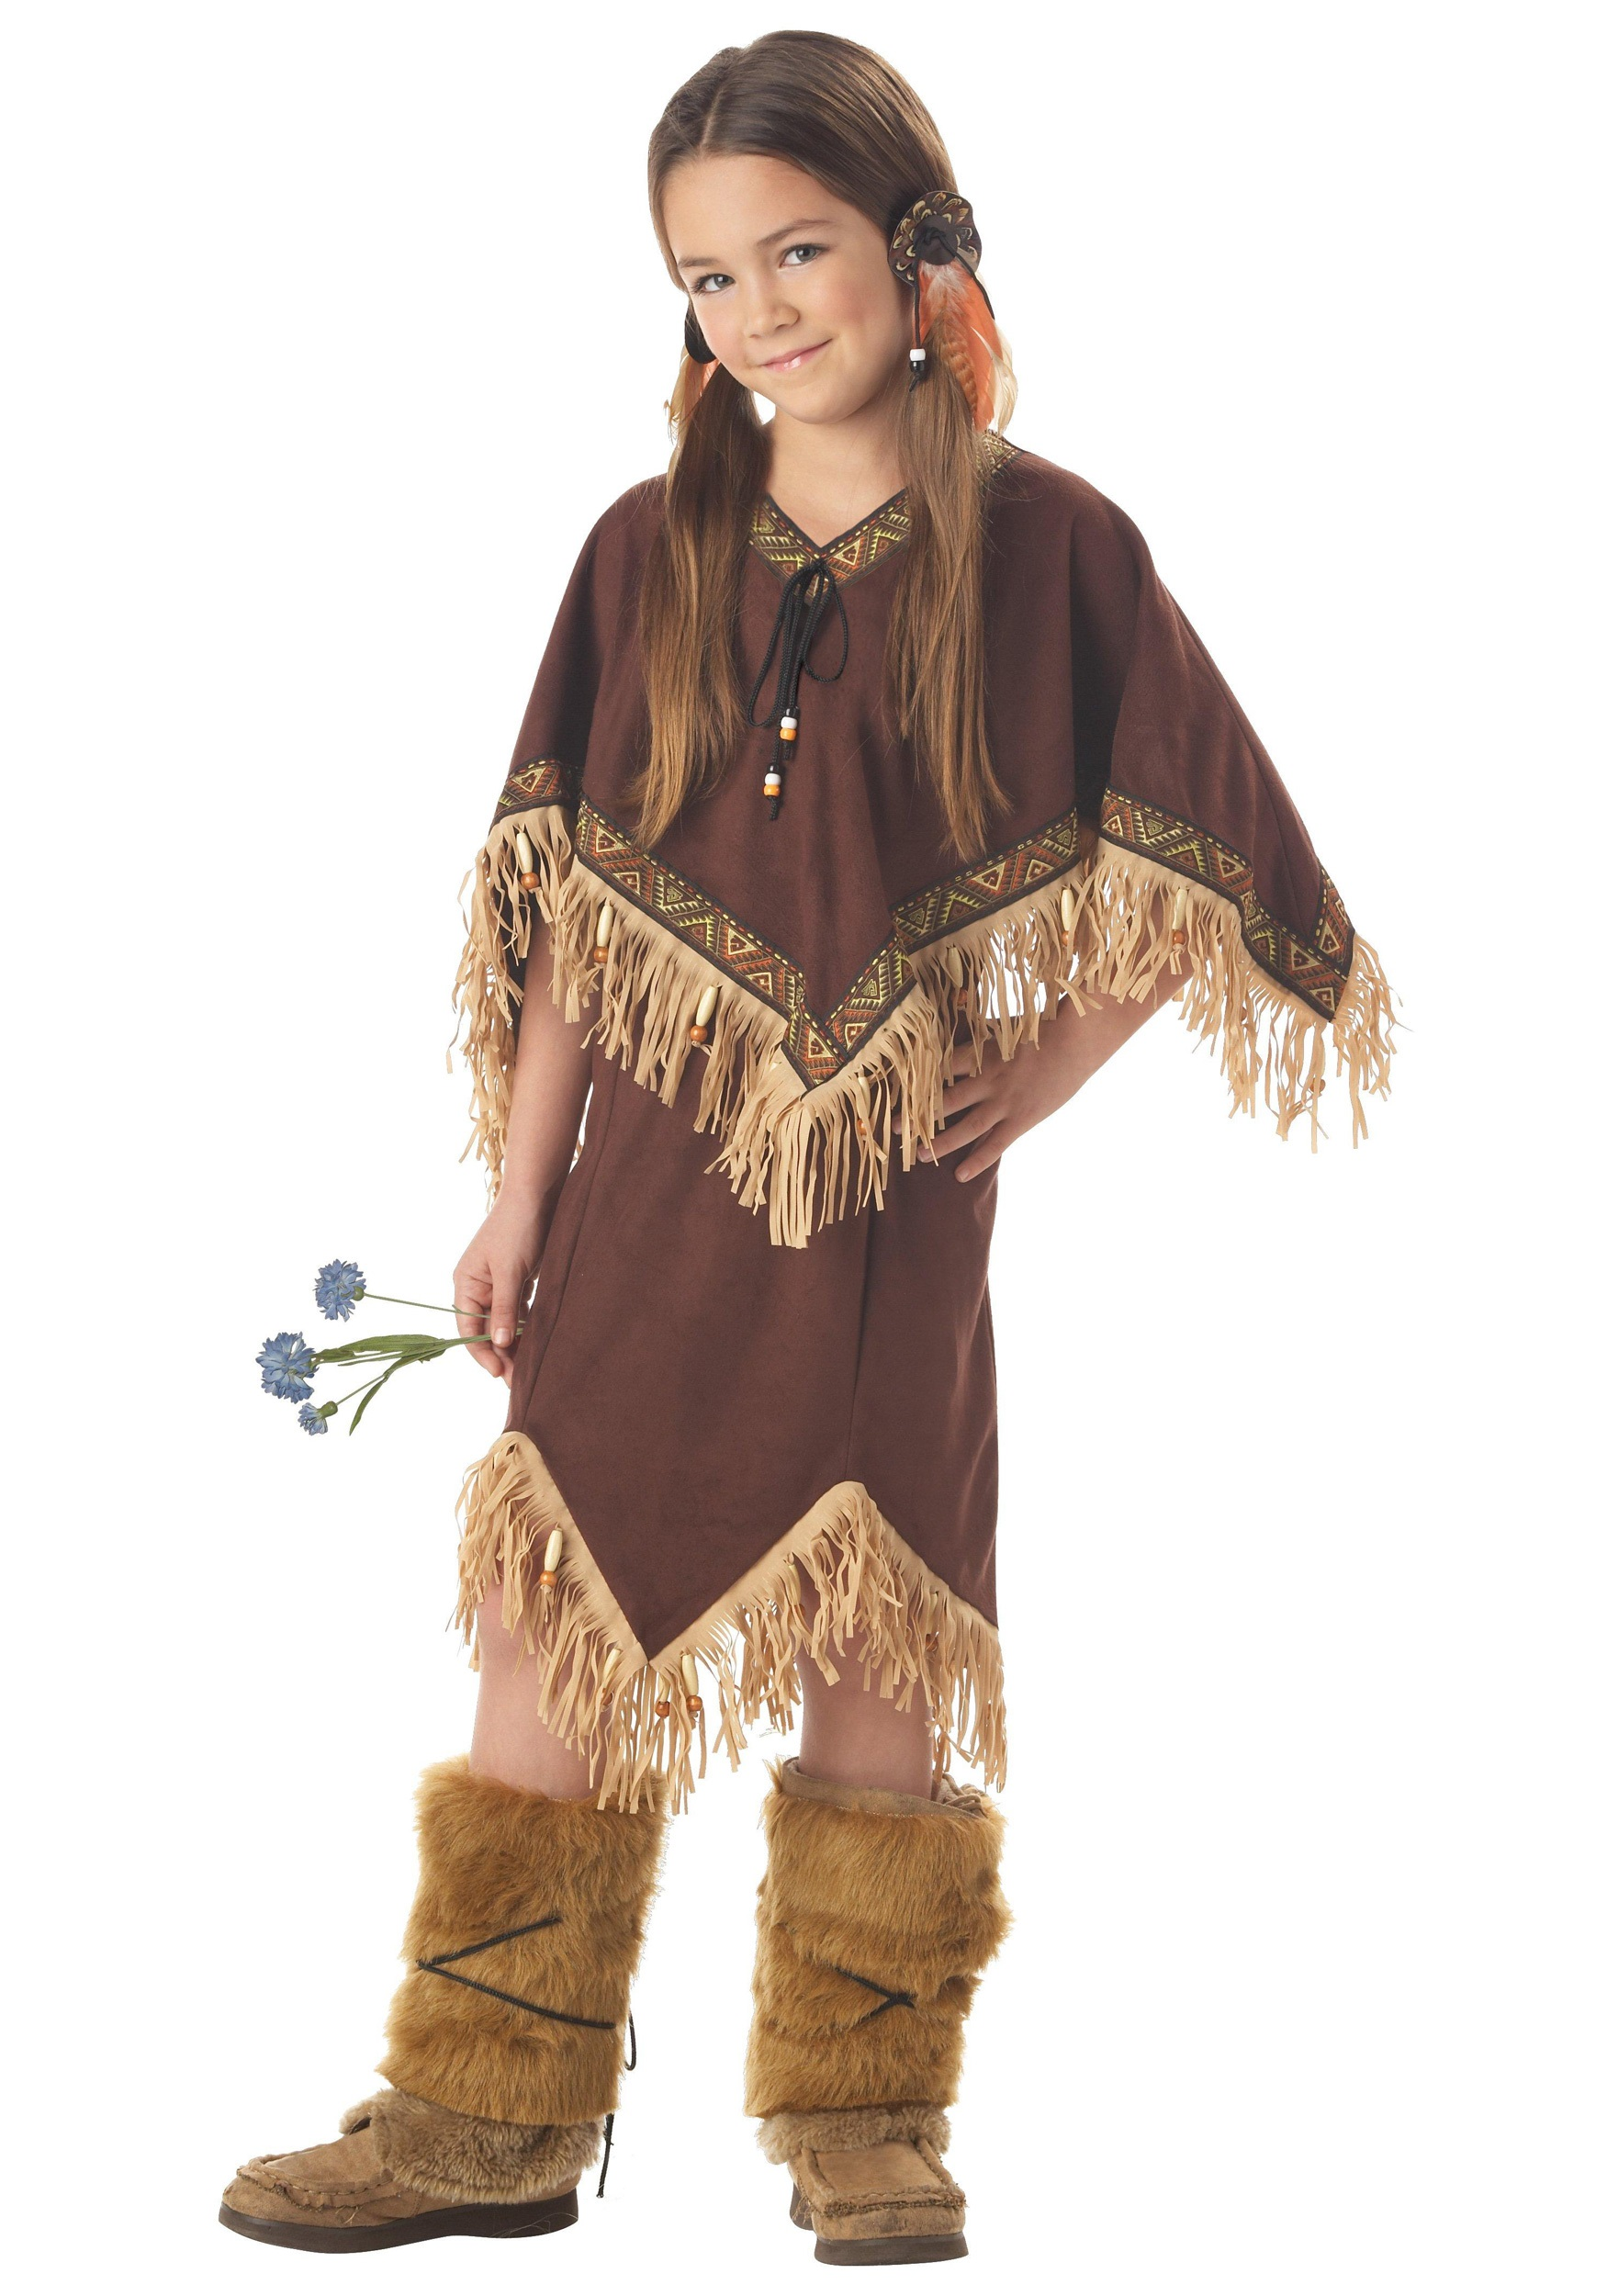 Child Indian Princess Costume  sc 1 st  Halloween Costumes & Child Indian Princess Costume - Halloween Costumes